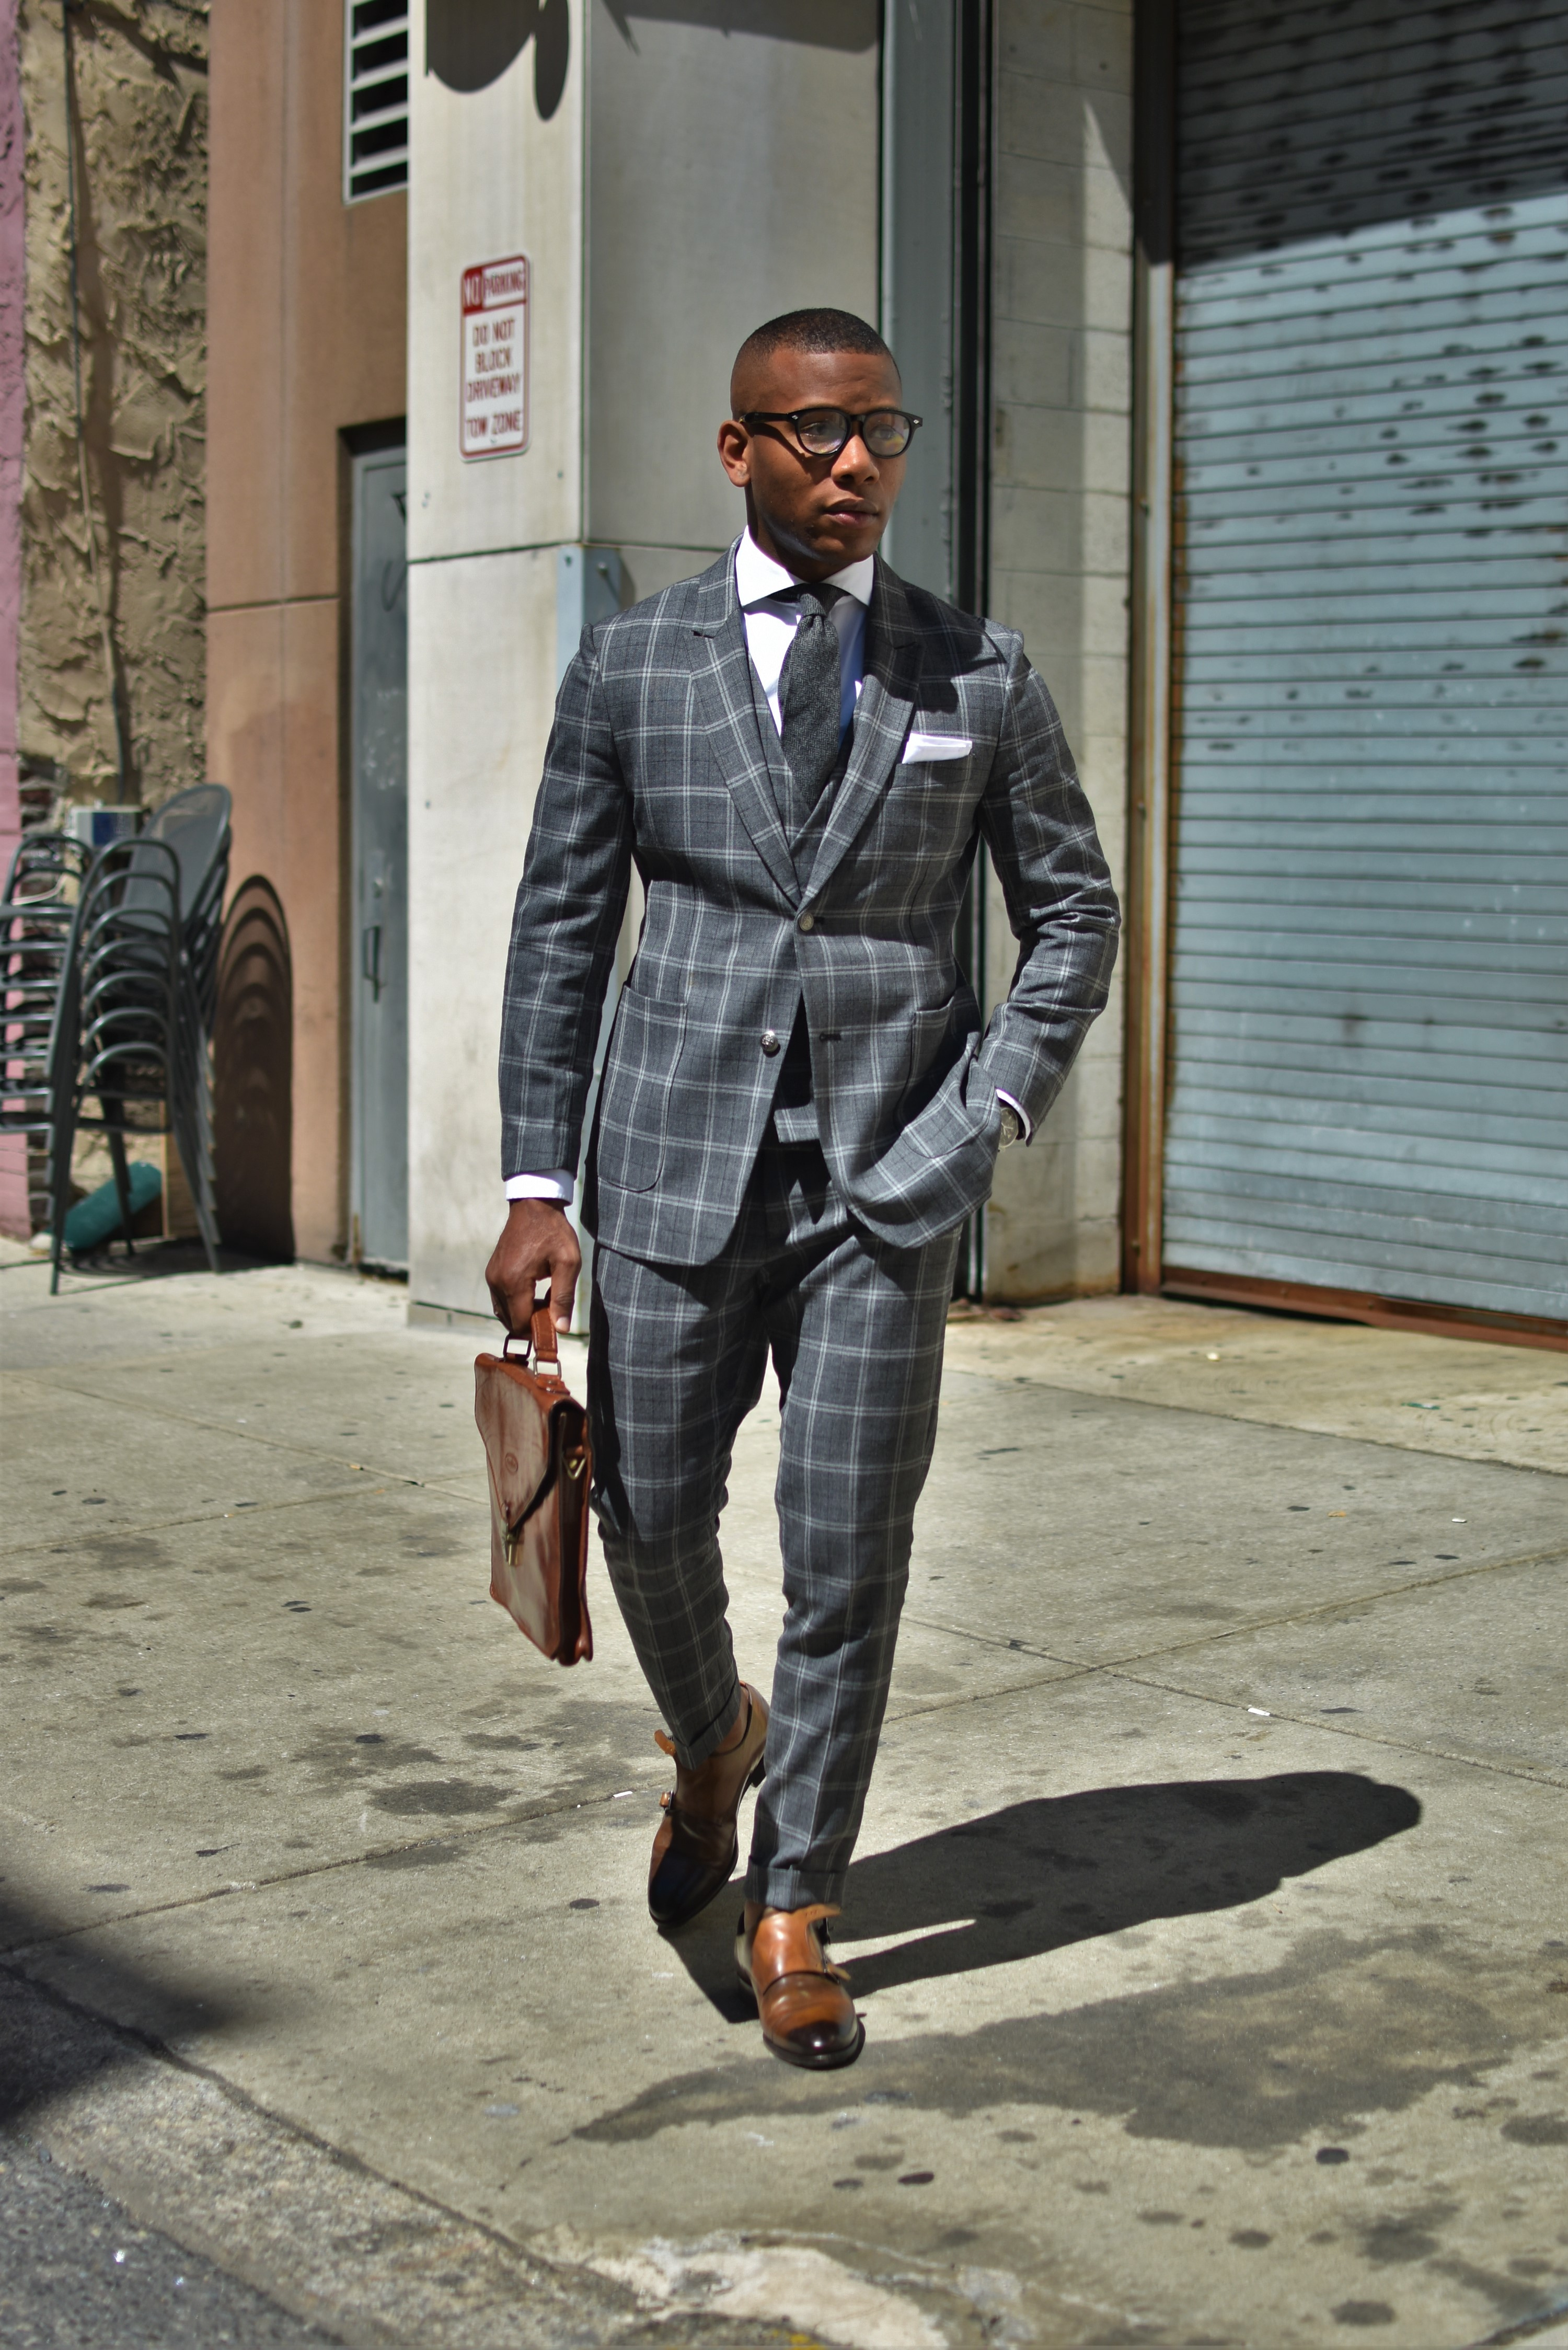 Men's Style Pro in Grey Plaid Tailor 4 Less Suit